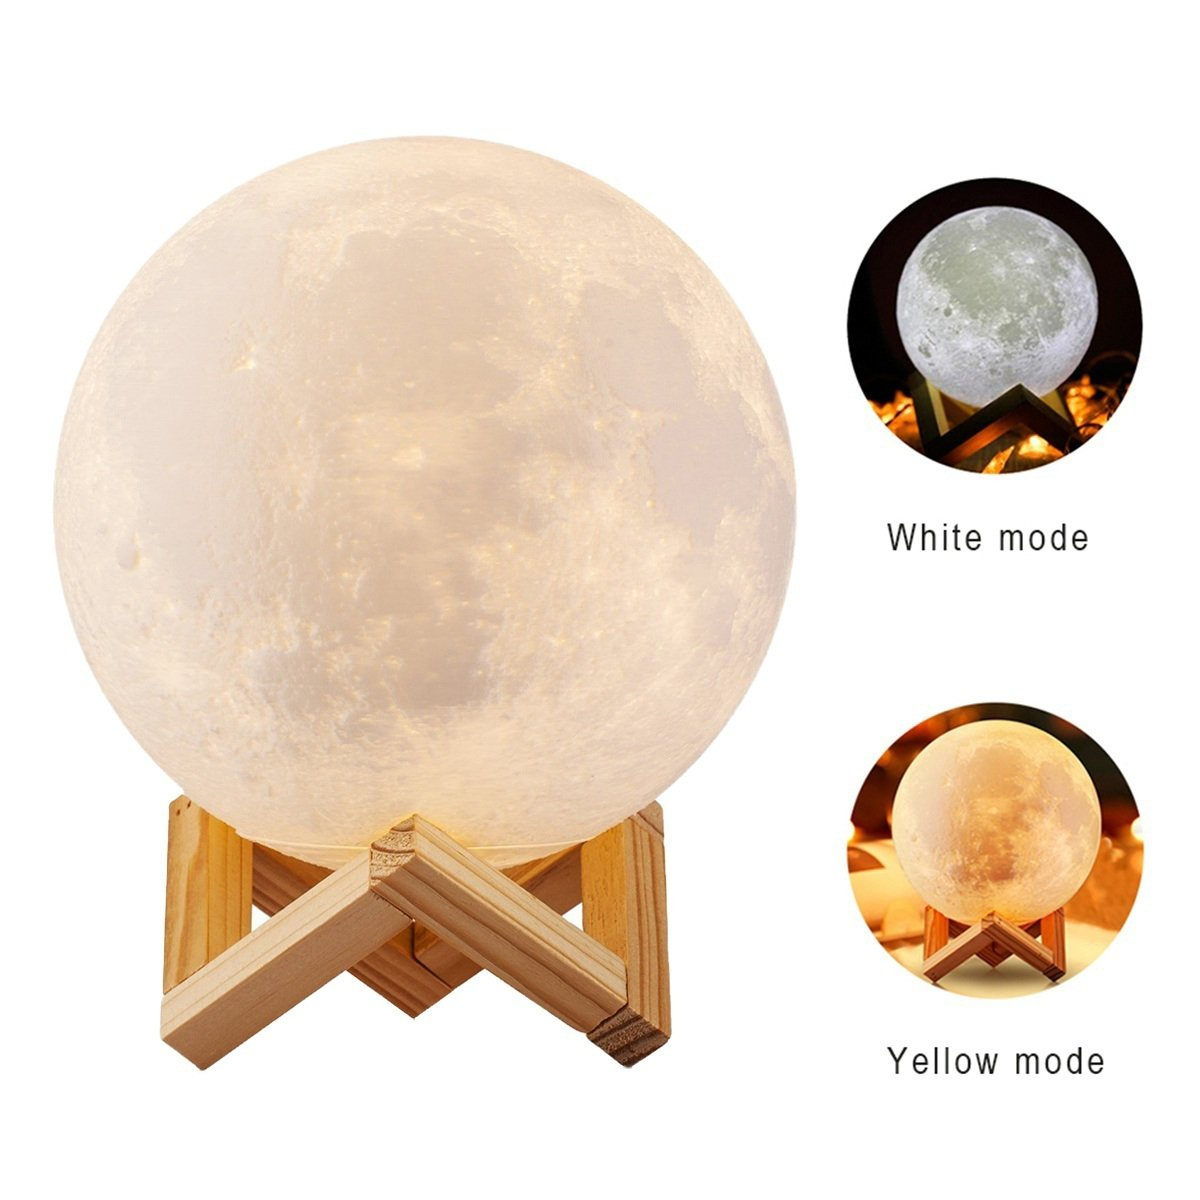 5.9 inch 3D Moon Lamp, USB LED Night Light Magical Lunar Table Lamp Moonlight Gift with Wooden Holder & Gift Box for Kids Gifts